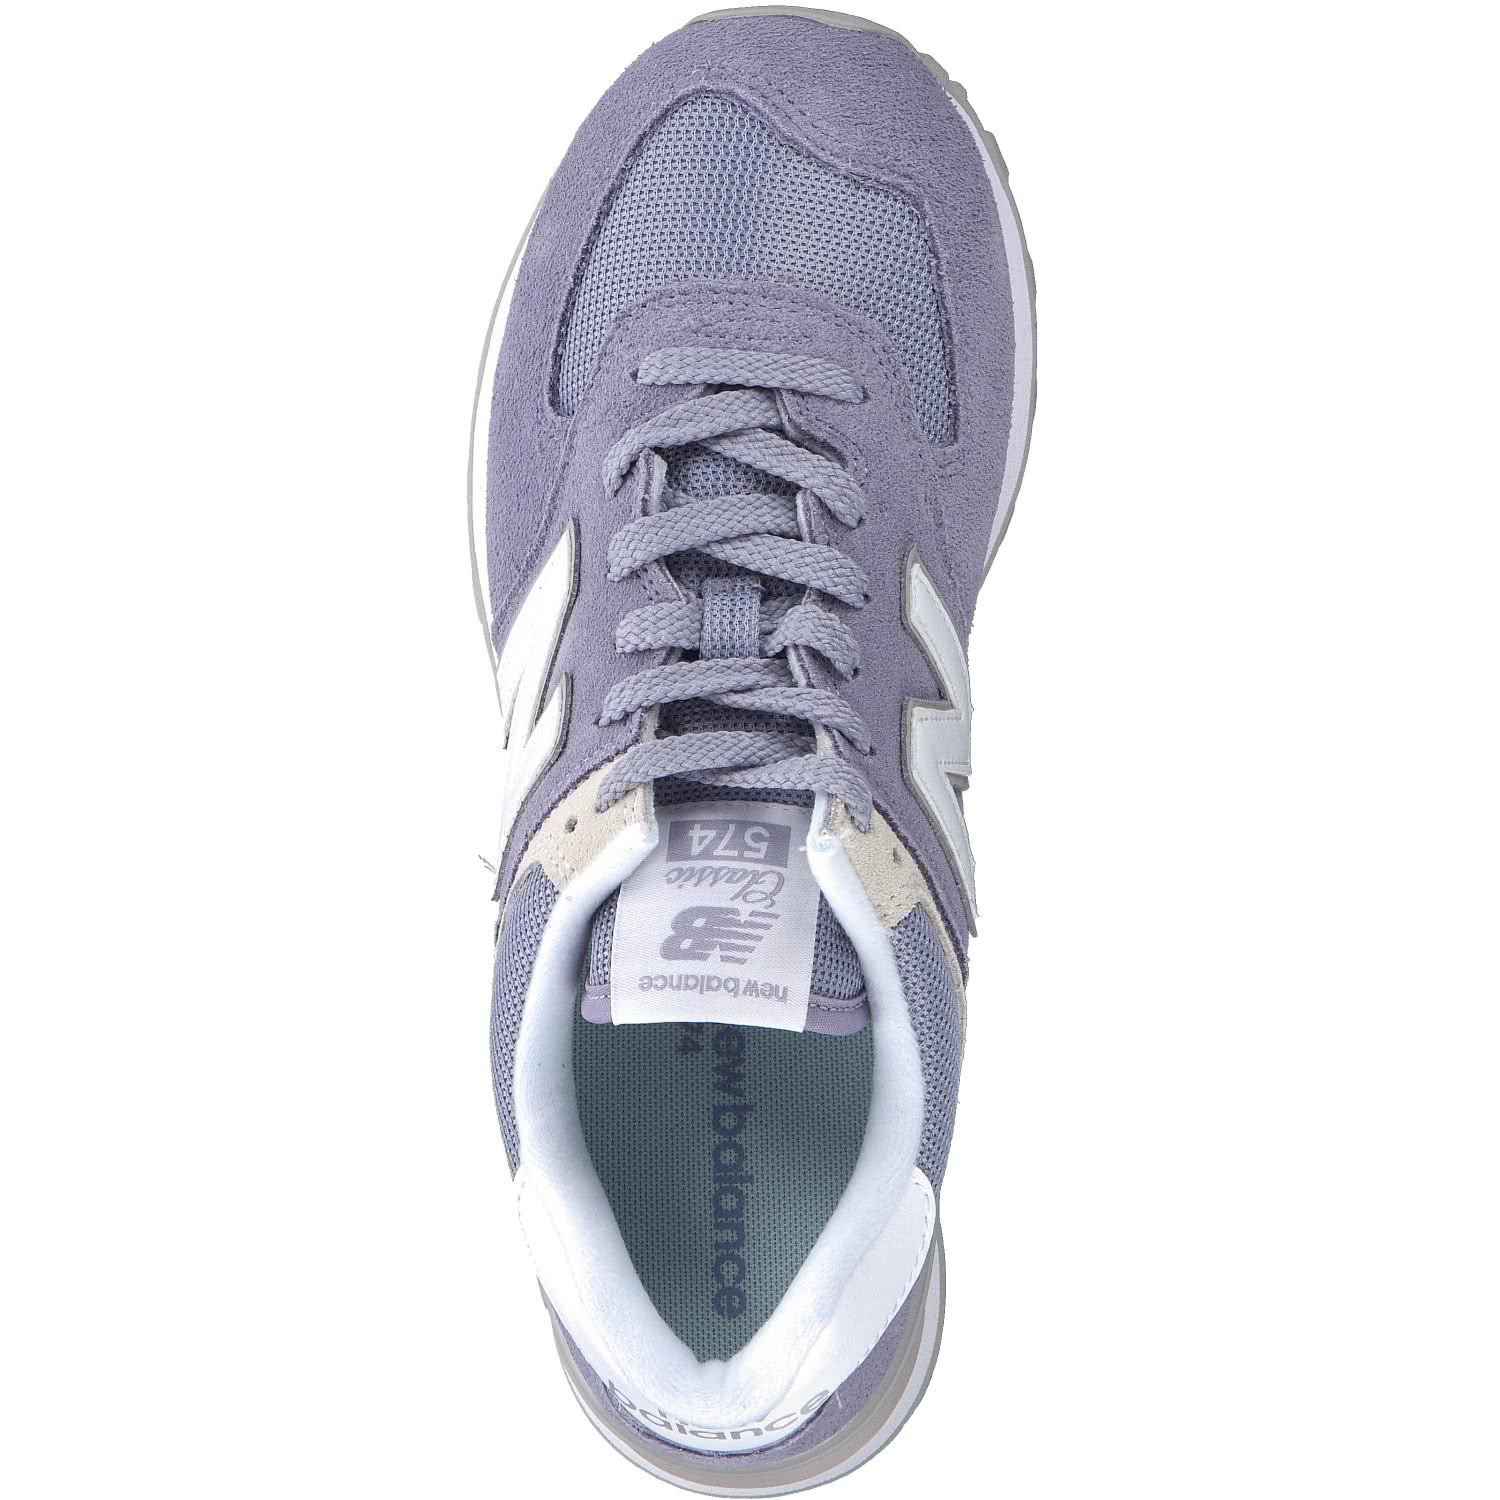 New Balance Damen Sneaker 574 Core 616371-50-B-14 43